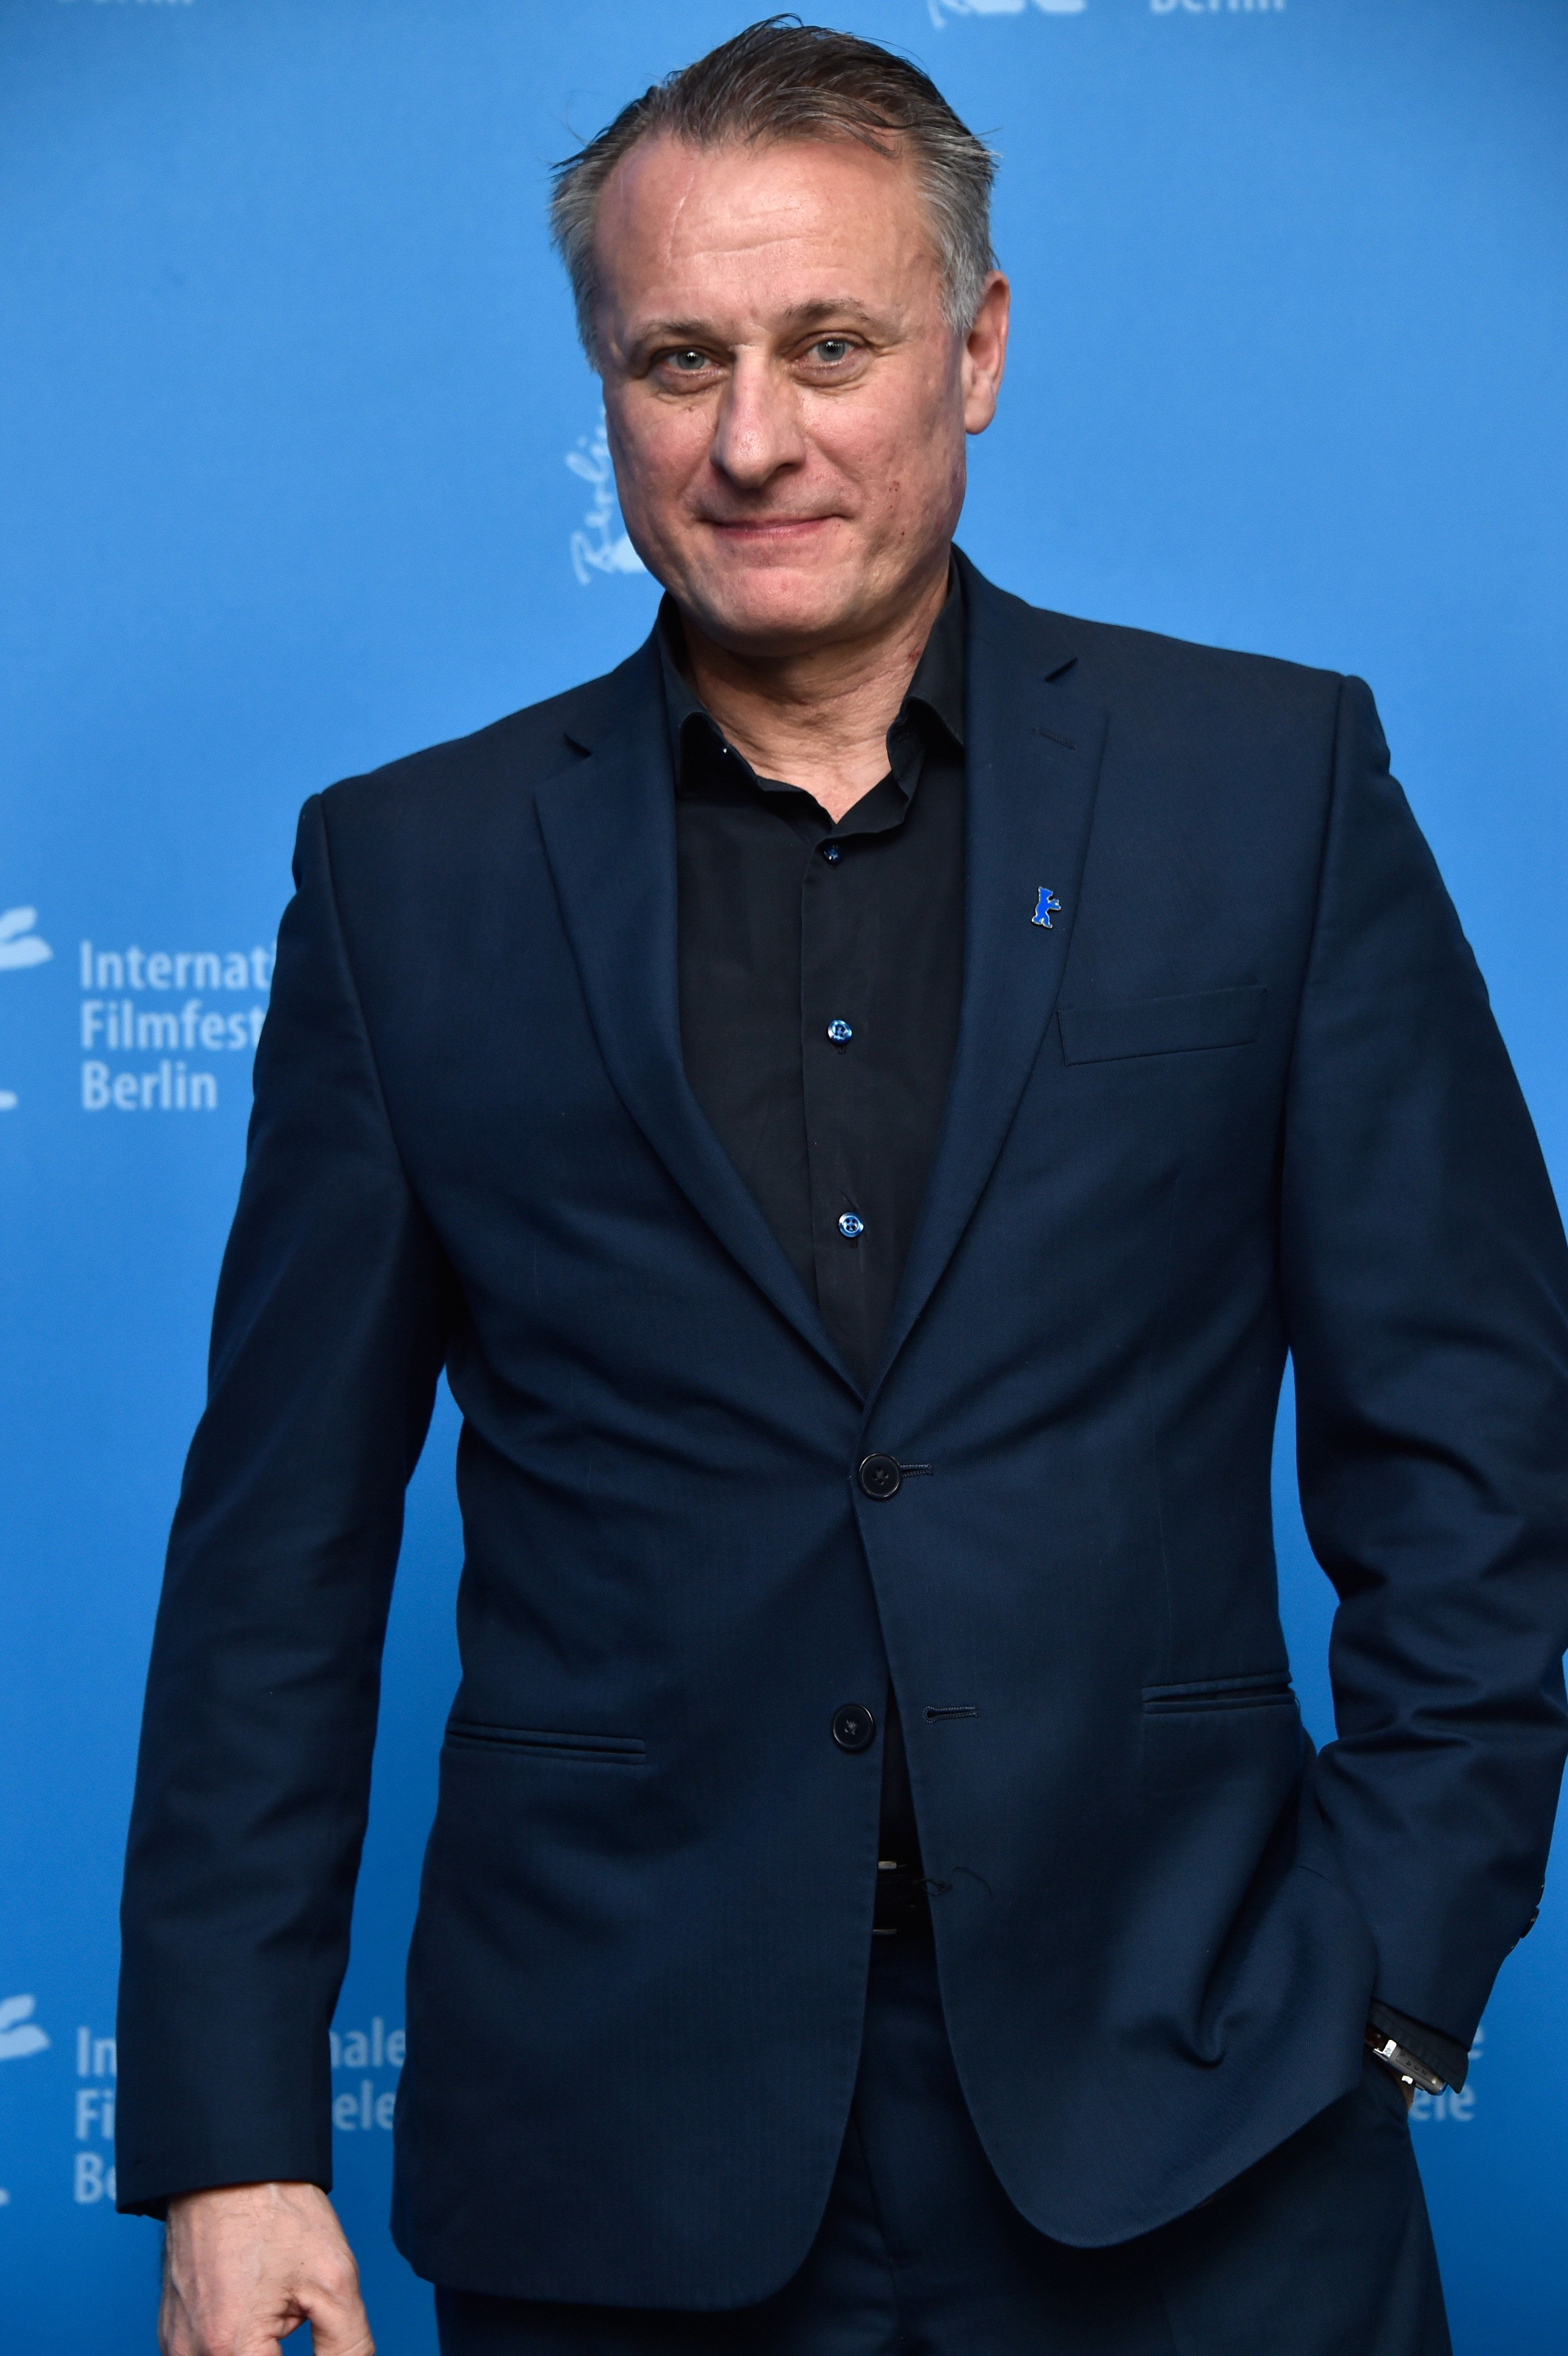 BERLIN, GERMANY - FEBRUARY 16:  Actor Michael Nyqvist  attends the 'A Serious Game' (Den allvarsamma leken) photo call during the 66th Berlinale International Film Festival Berlin at Grand Hyatt Hotel on February 16, 2016 in Berlin, Germany.  (Photo by Pascal Le Segretain/Getty Images)